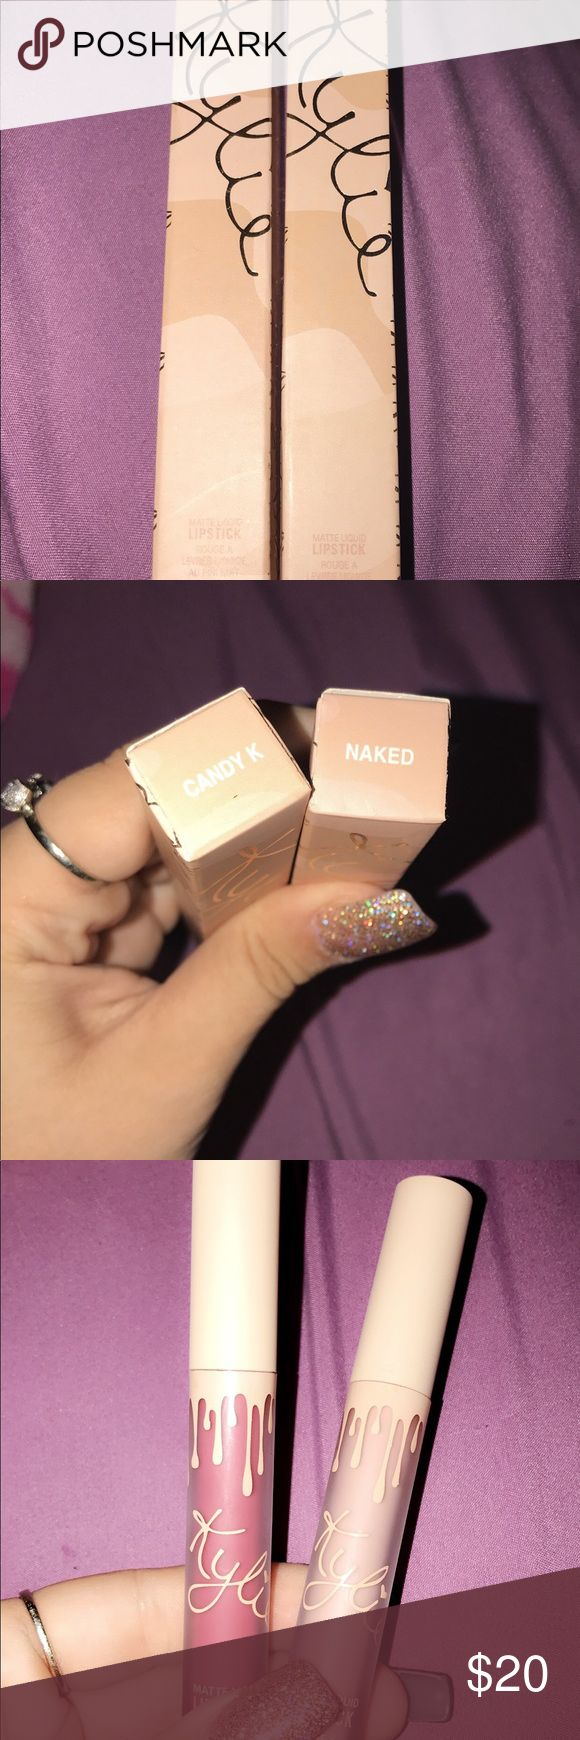 """Kylie Cosmetics """"Naked"""" and """"Candy K"""" Matte Lips """"Naked"""" and """"Candy K"""" Both matte. Swatched once on my arm with a lip brush, never used otherwise. I bought on Poshmark, I am not sure about the authenticity, they are just not the right colors for me. There was no irritation when swatched on my arm Kylie Cosmetics Makeup Lipstick"""